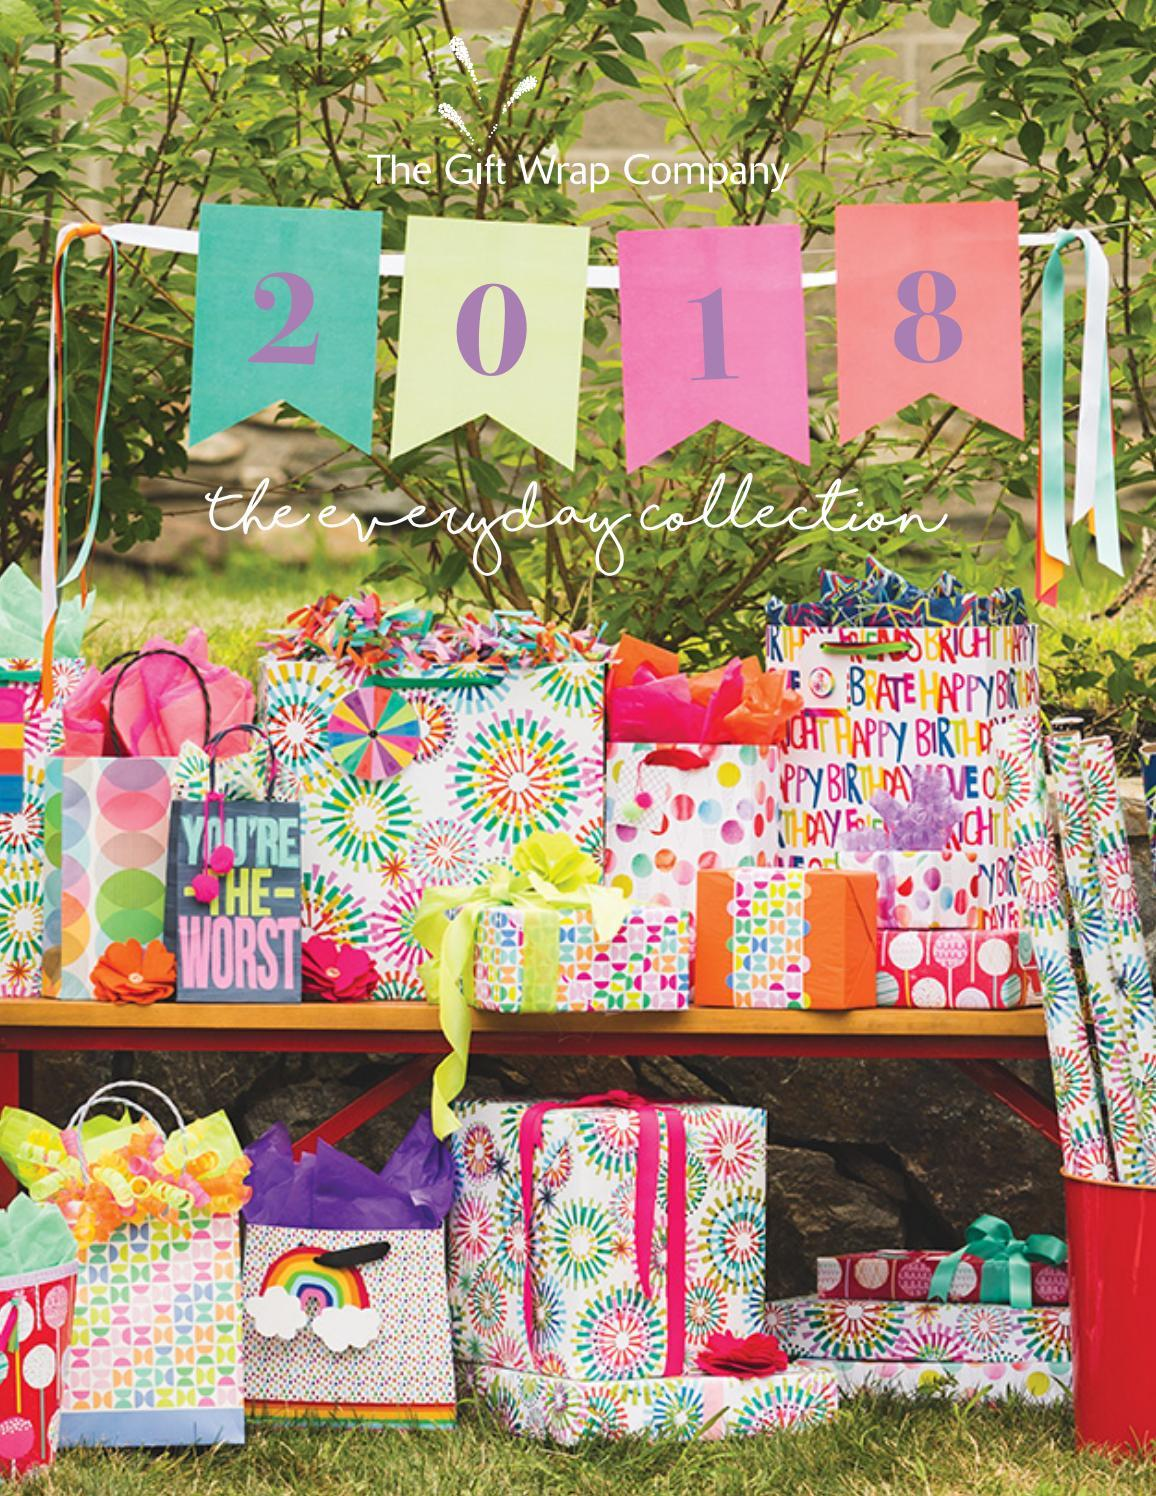 The Gift Wrap